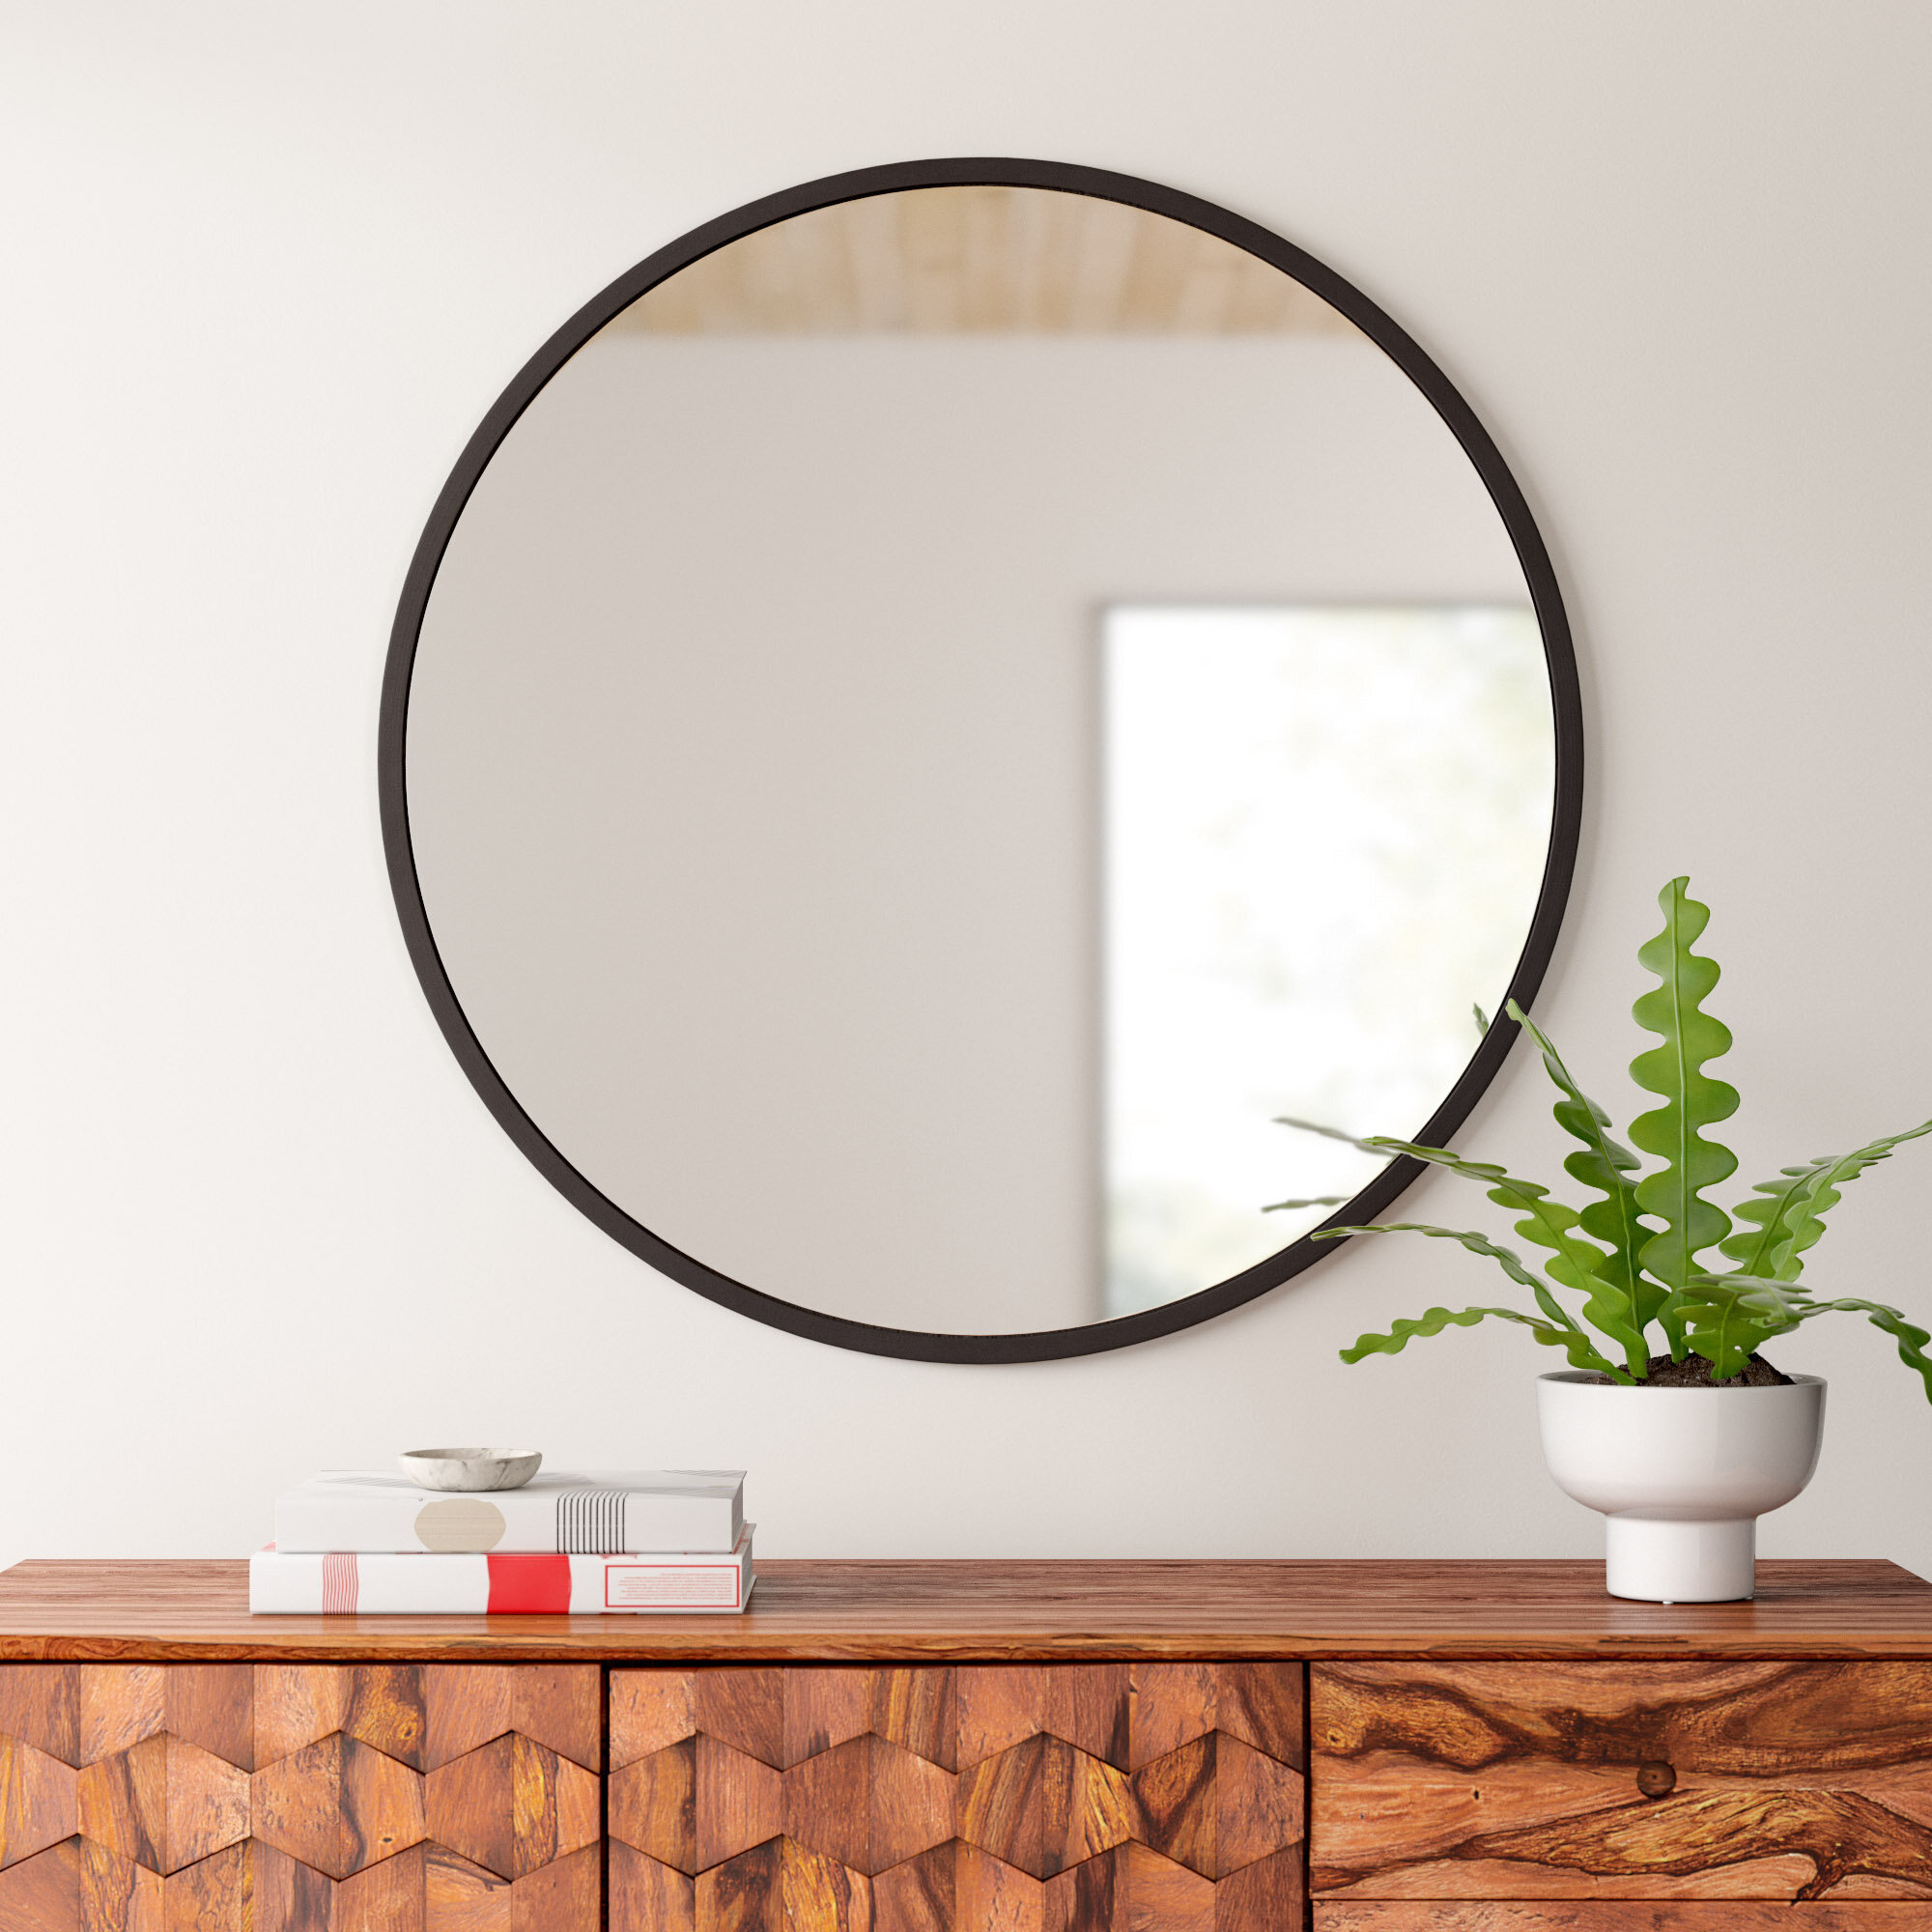 Umbra Hub Modern And Contemporary Accent Mirror Pertaining To Hub Modern And Contemporary Accent Mirrors (Photo 10 of 20)